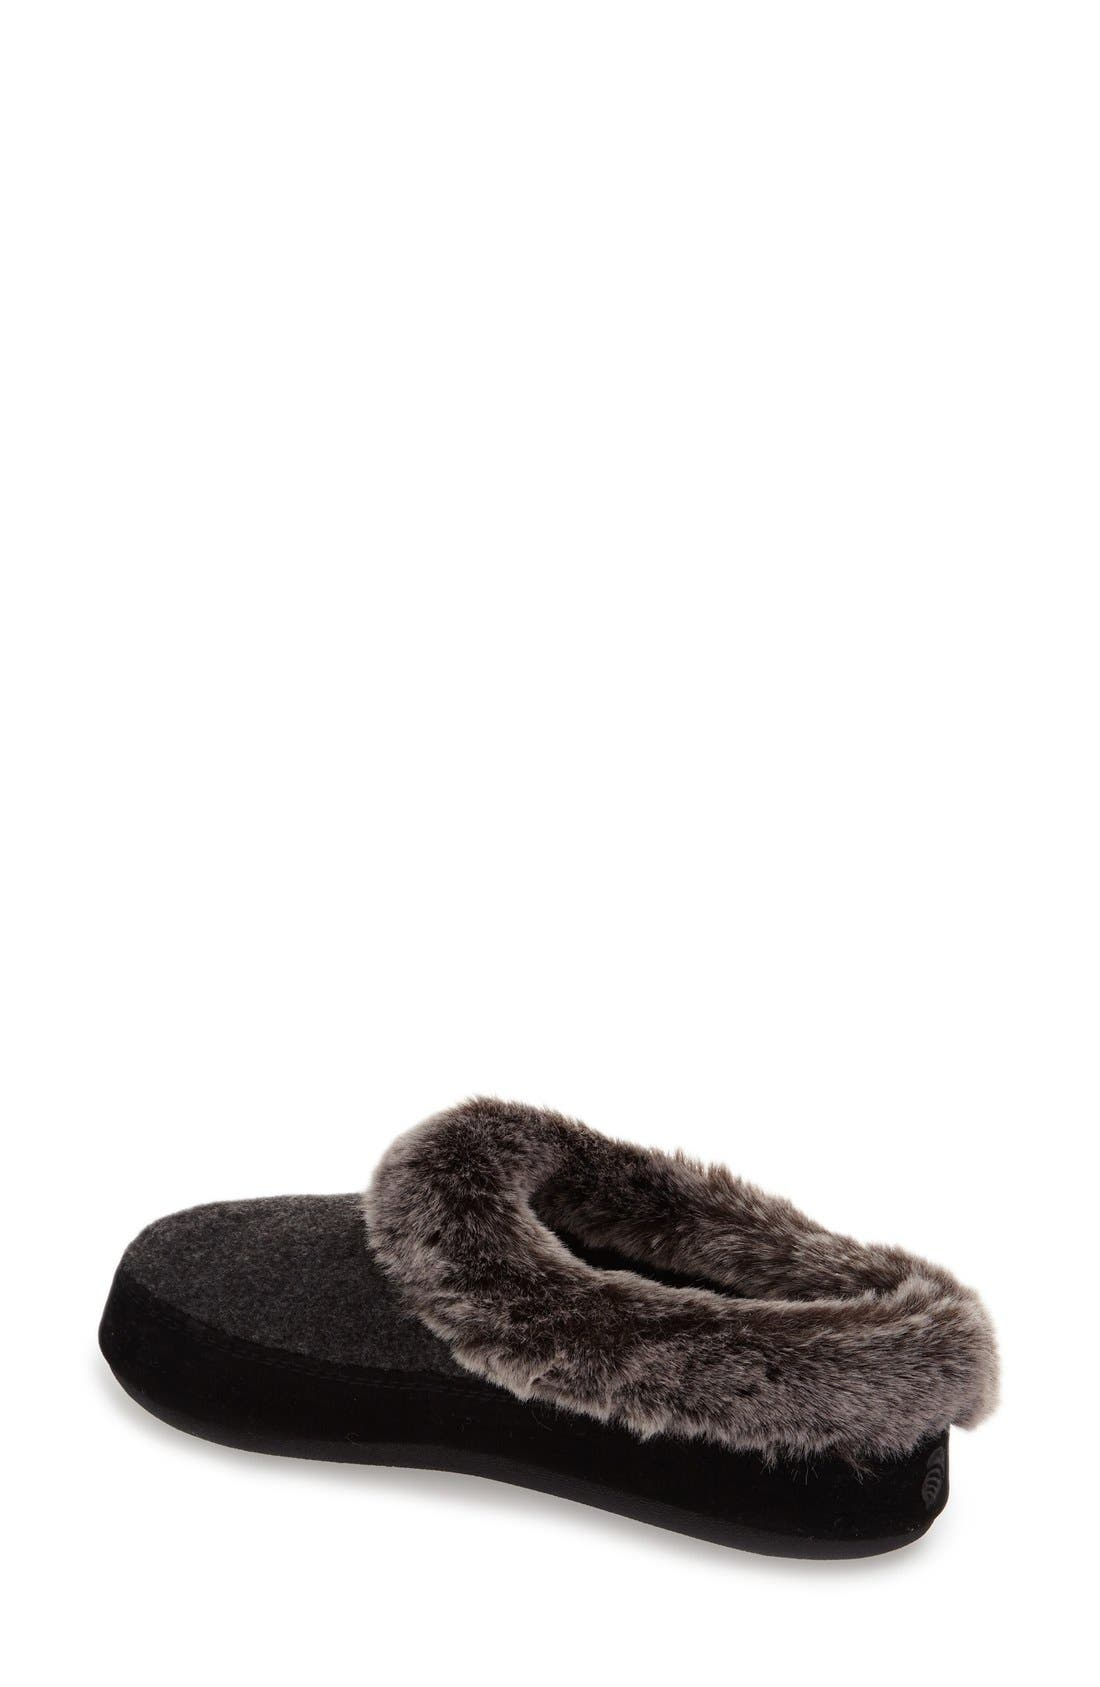 Alternate Image 2  - Acorn 'Cloud Chilla Scuff' Slipper (Women)